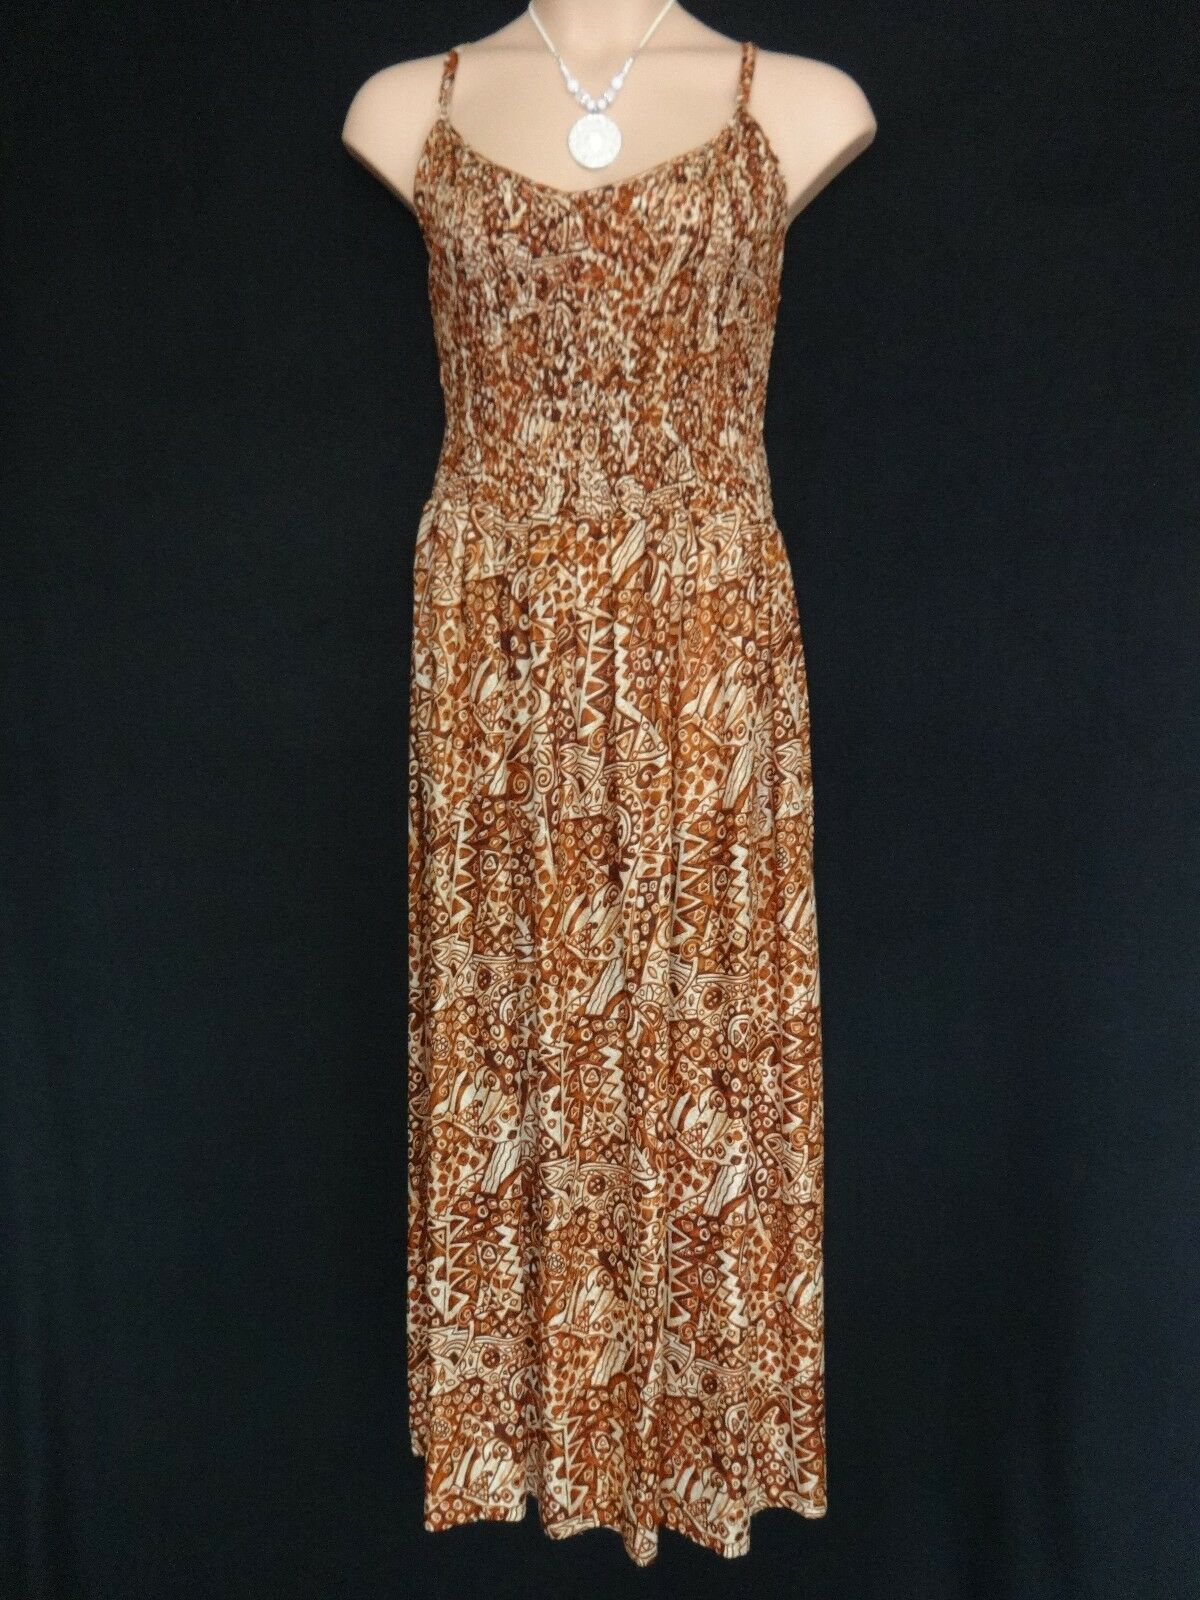 FRANKEN BROWN TAN Thin strap SUMMER MAXI DRESS HOLIDAY T PARTY PLUS SIZE 10 - 12